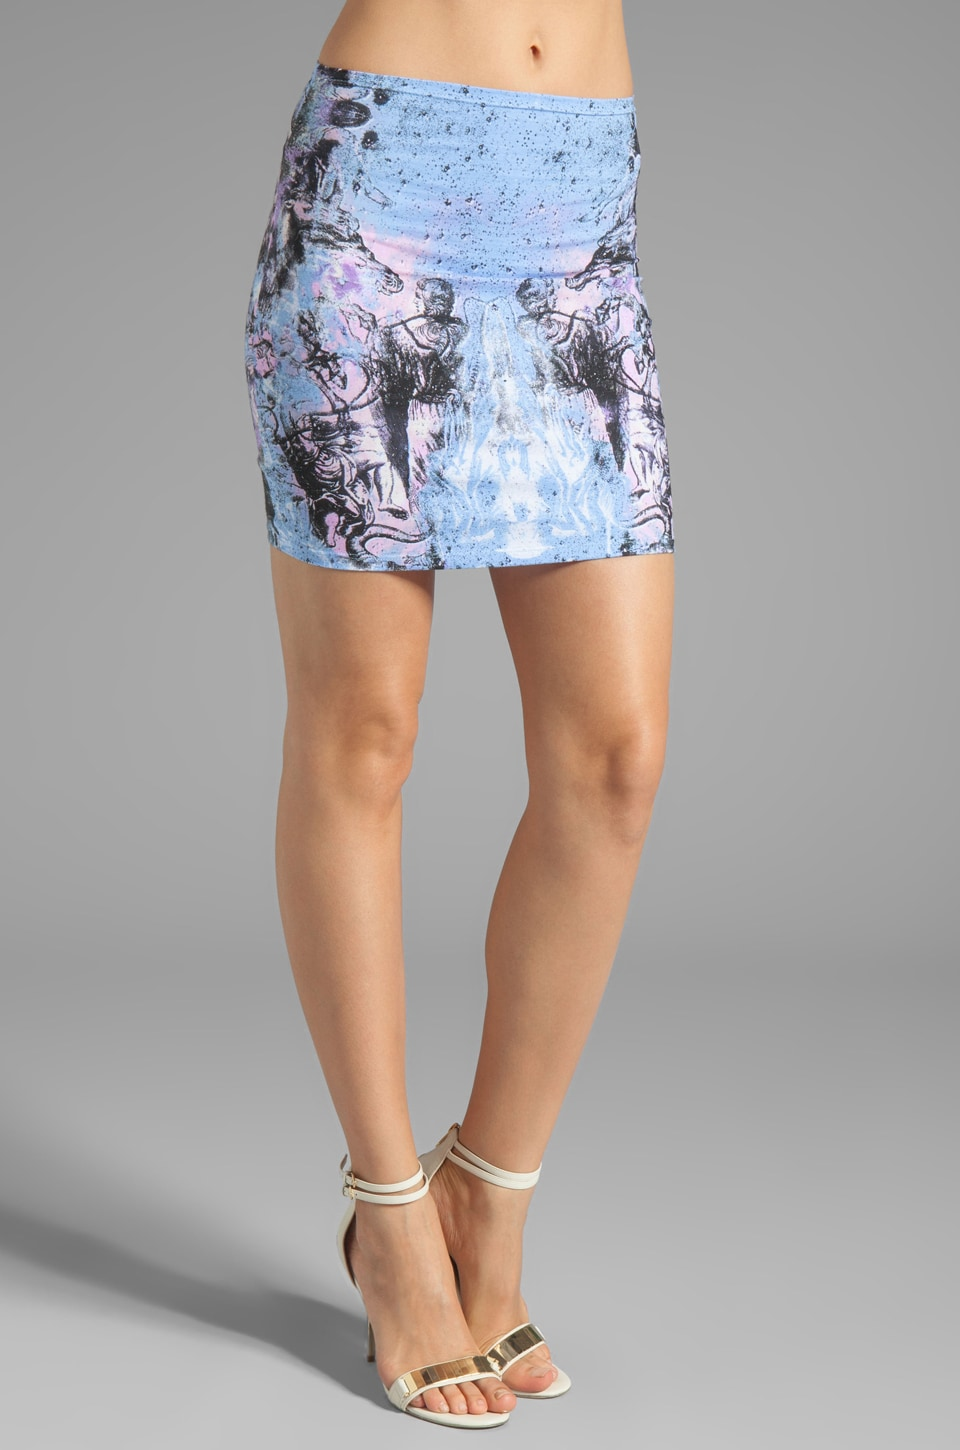 Motel Kimi Skirt in Cosmic Boogie Pale